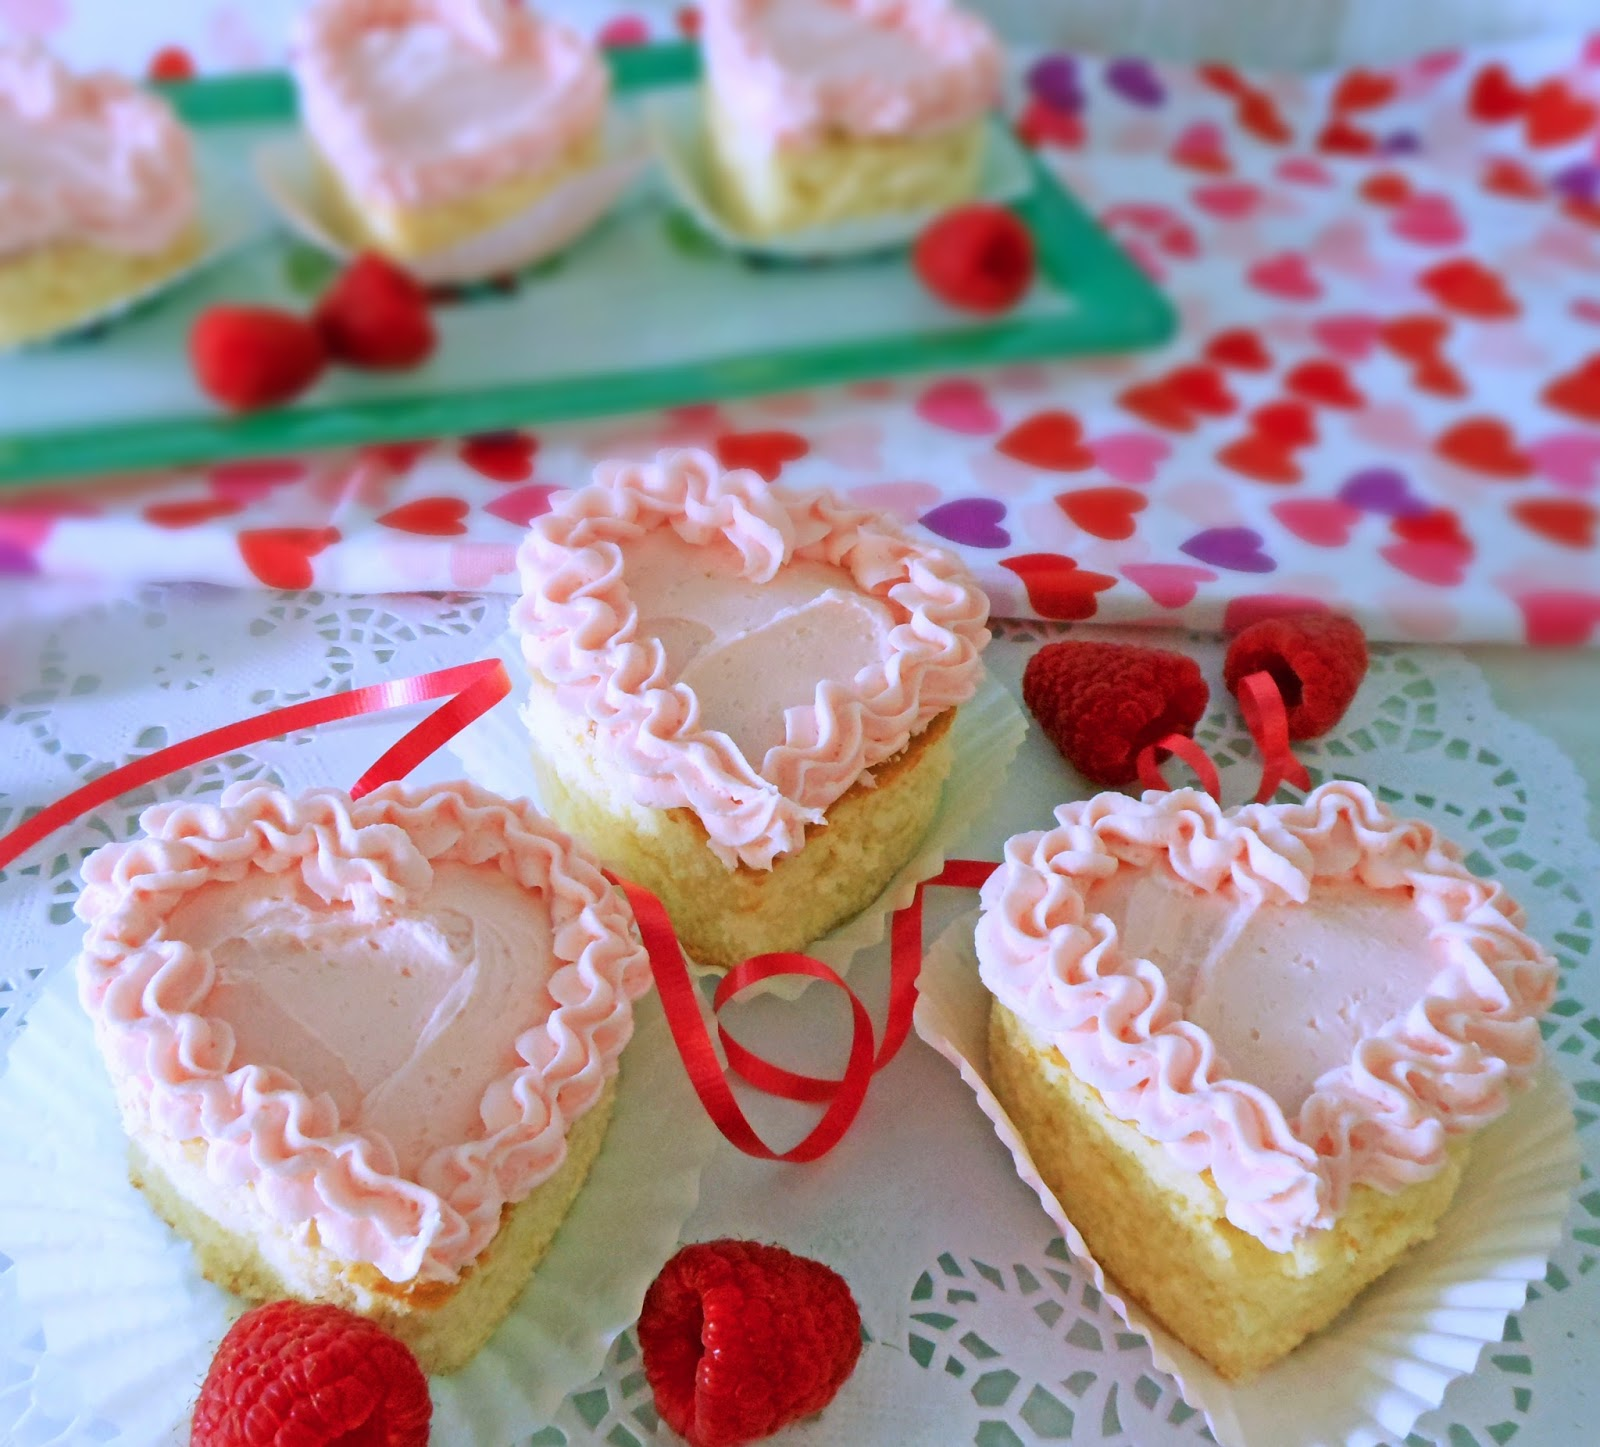 My Cookie Clinic: MINI VALENTINE CAKES/ Cake Love